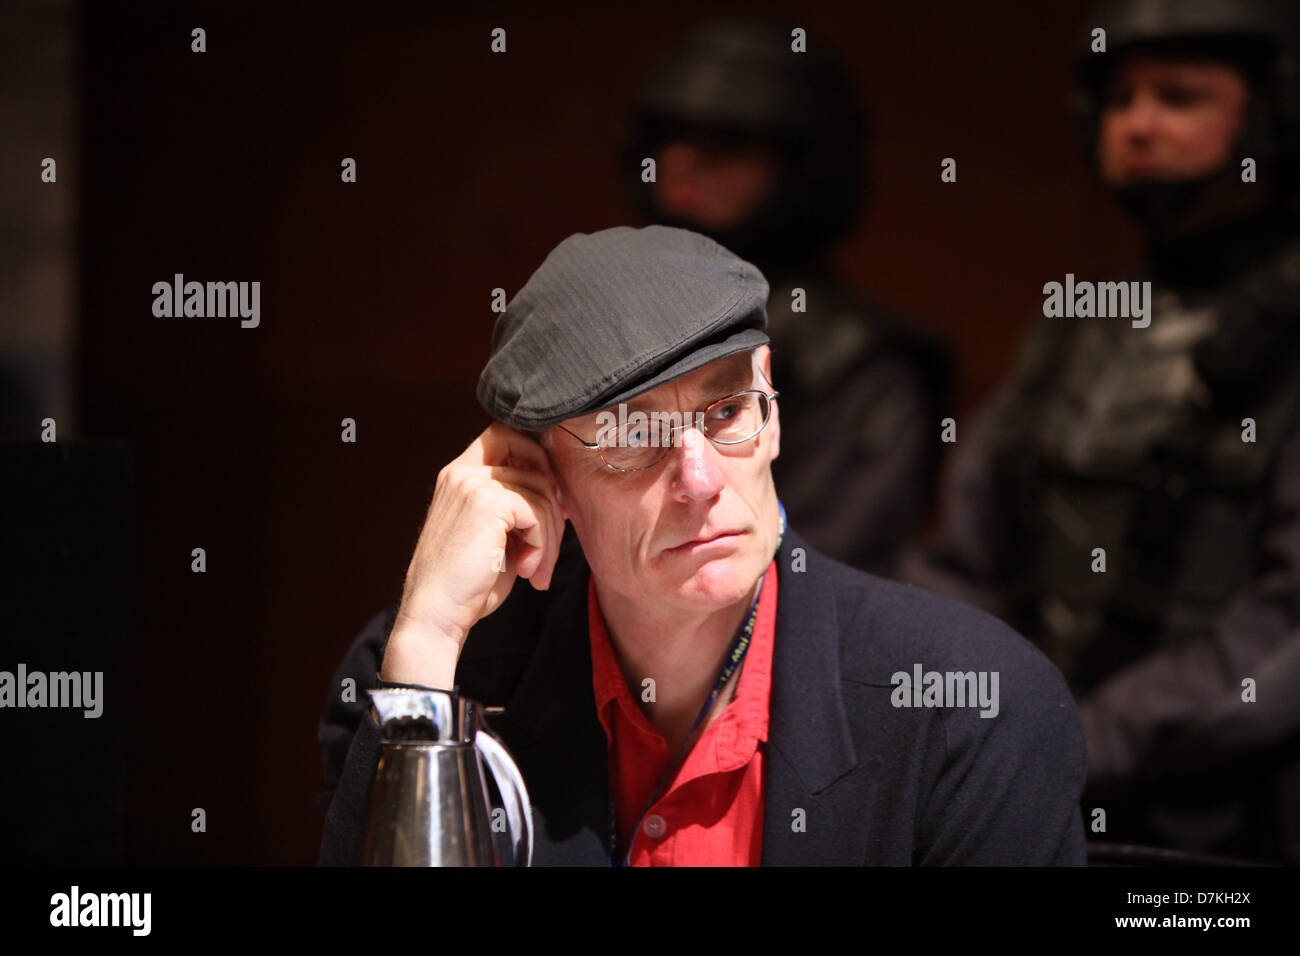 Duesseldorf, Germany, 09 May 2013. Actor Matt Frewer (Mentors, PSI-Factor) takes part in a press conference at Fedcon - Stock Image